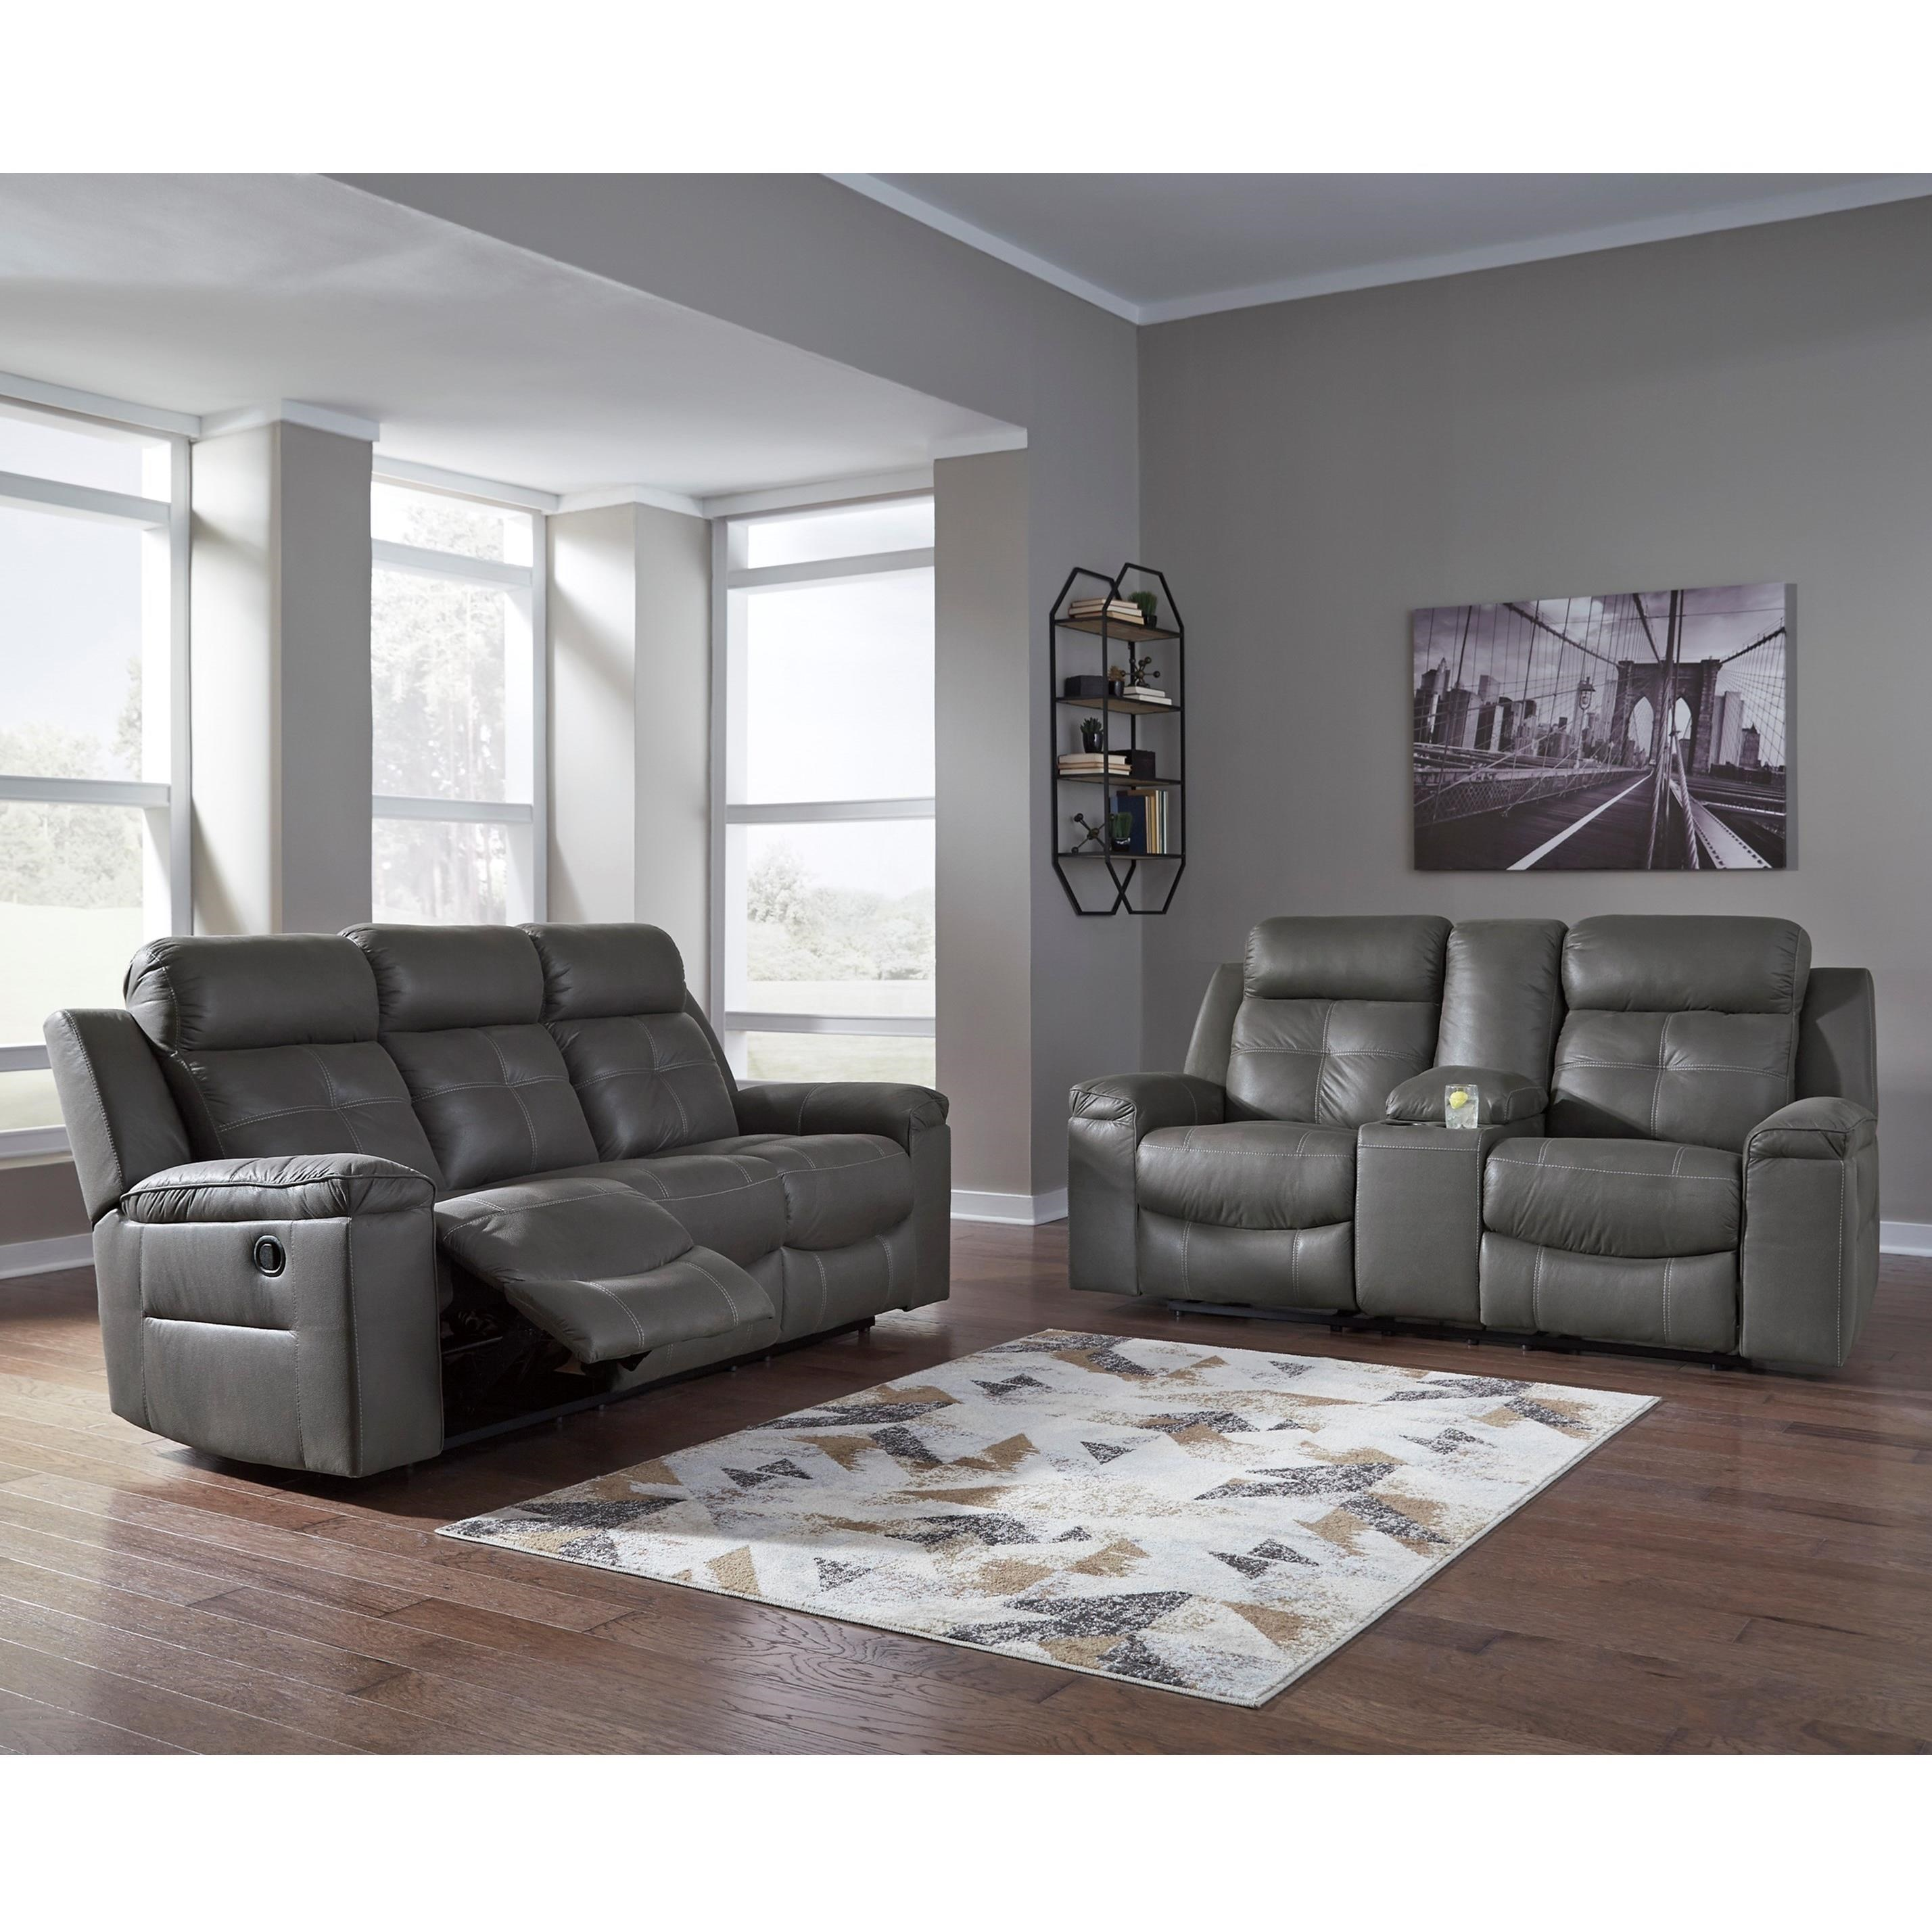 Signature Design By Ashley Jesolo Reclining Living Room Group Furniture Superstore Rochester